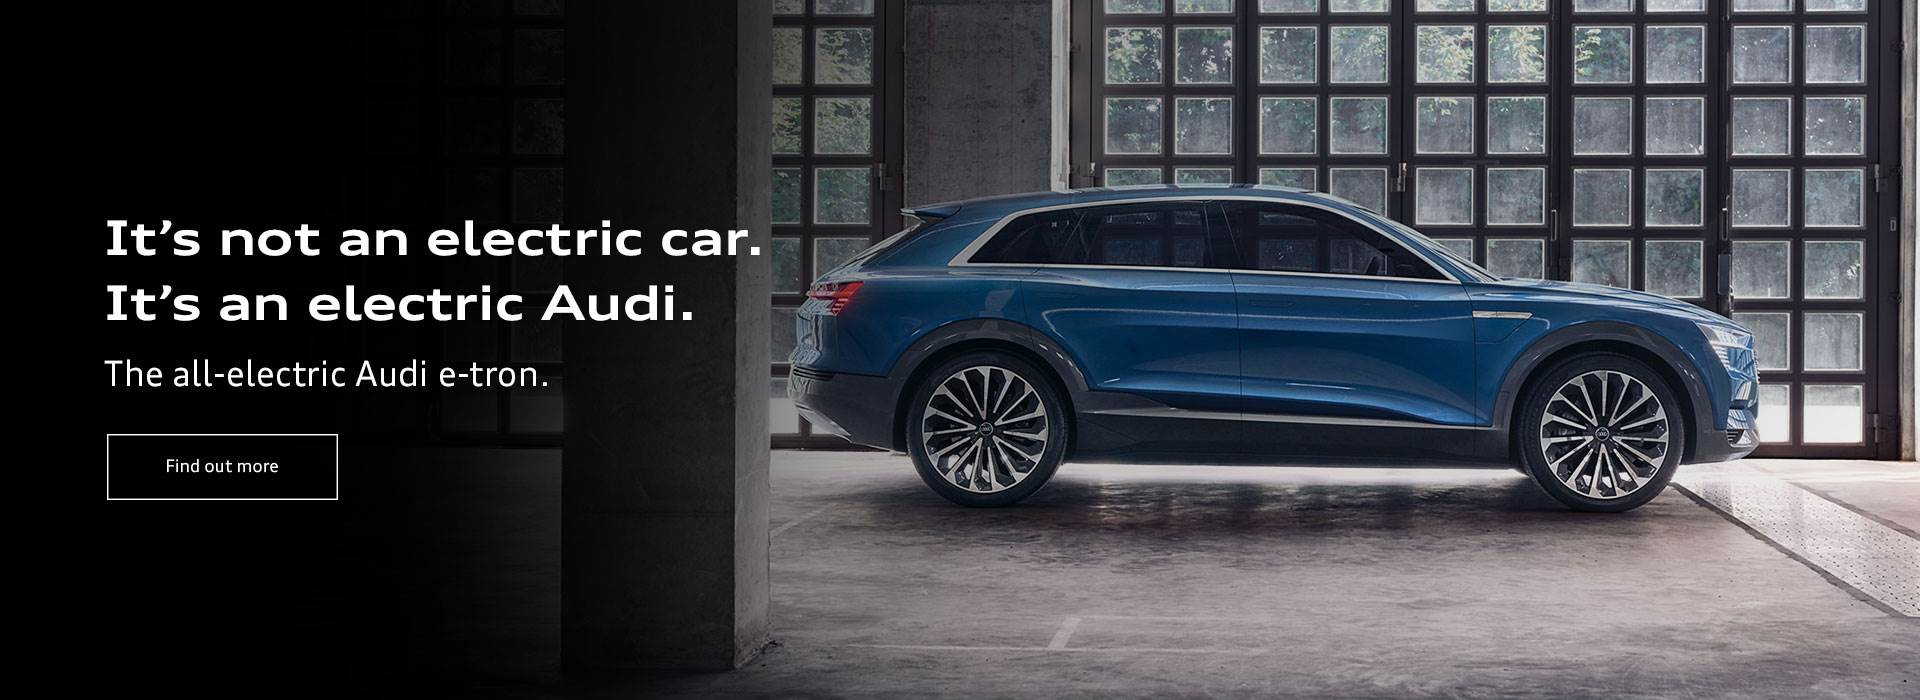 https://www.monmotors.com/news/the-audi-e-tron/18081/newsdetail.aspx